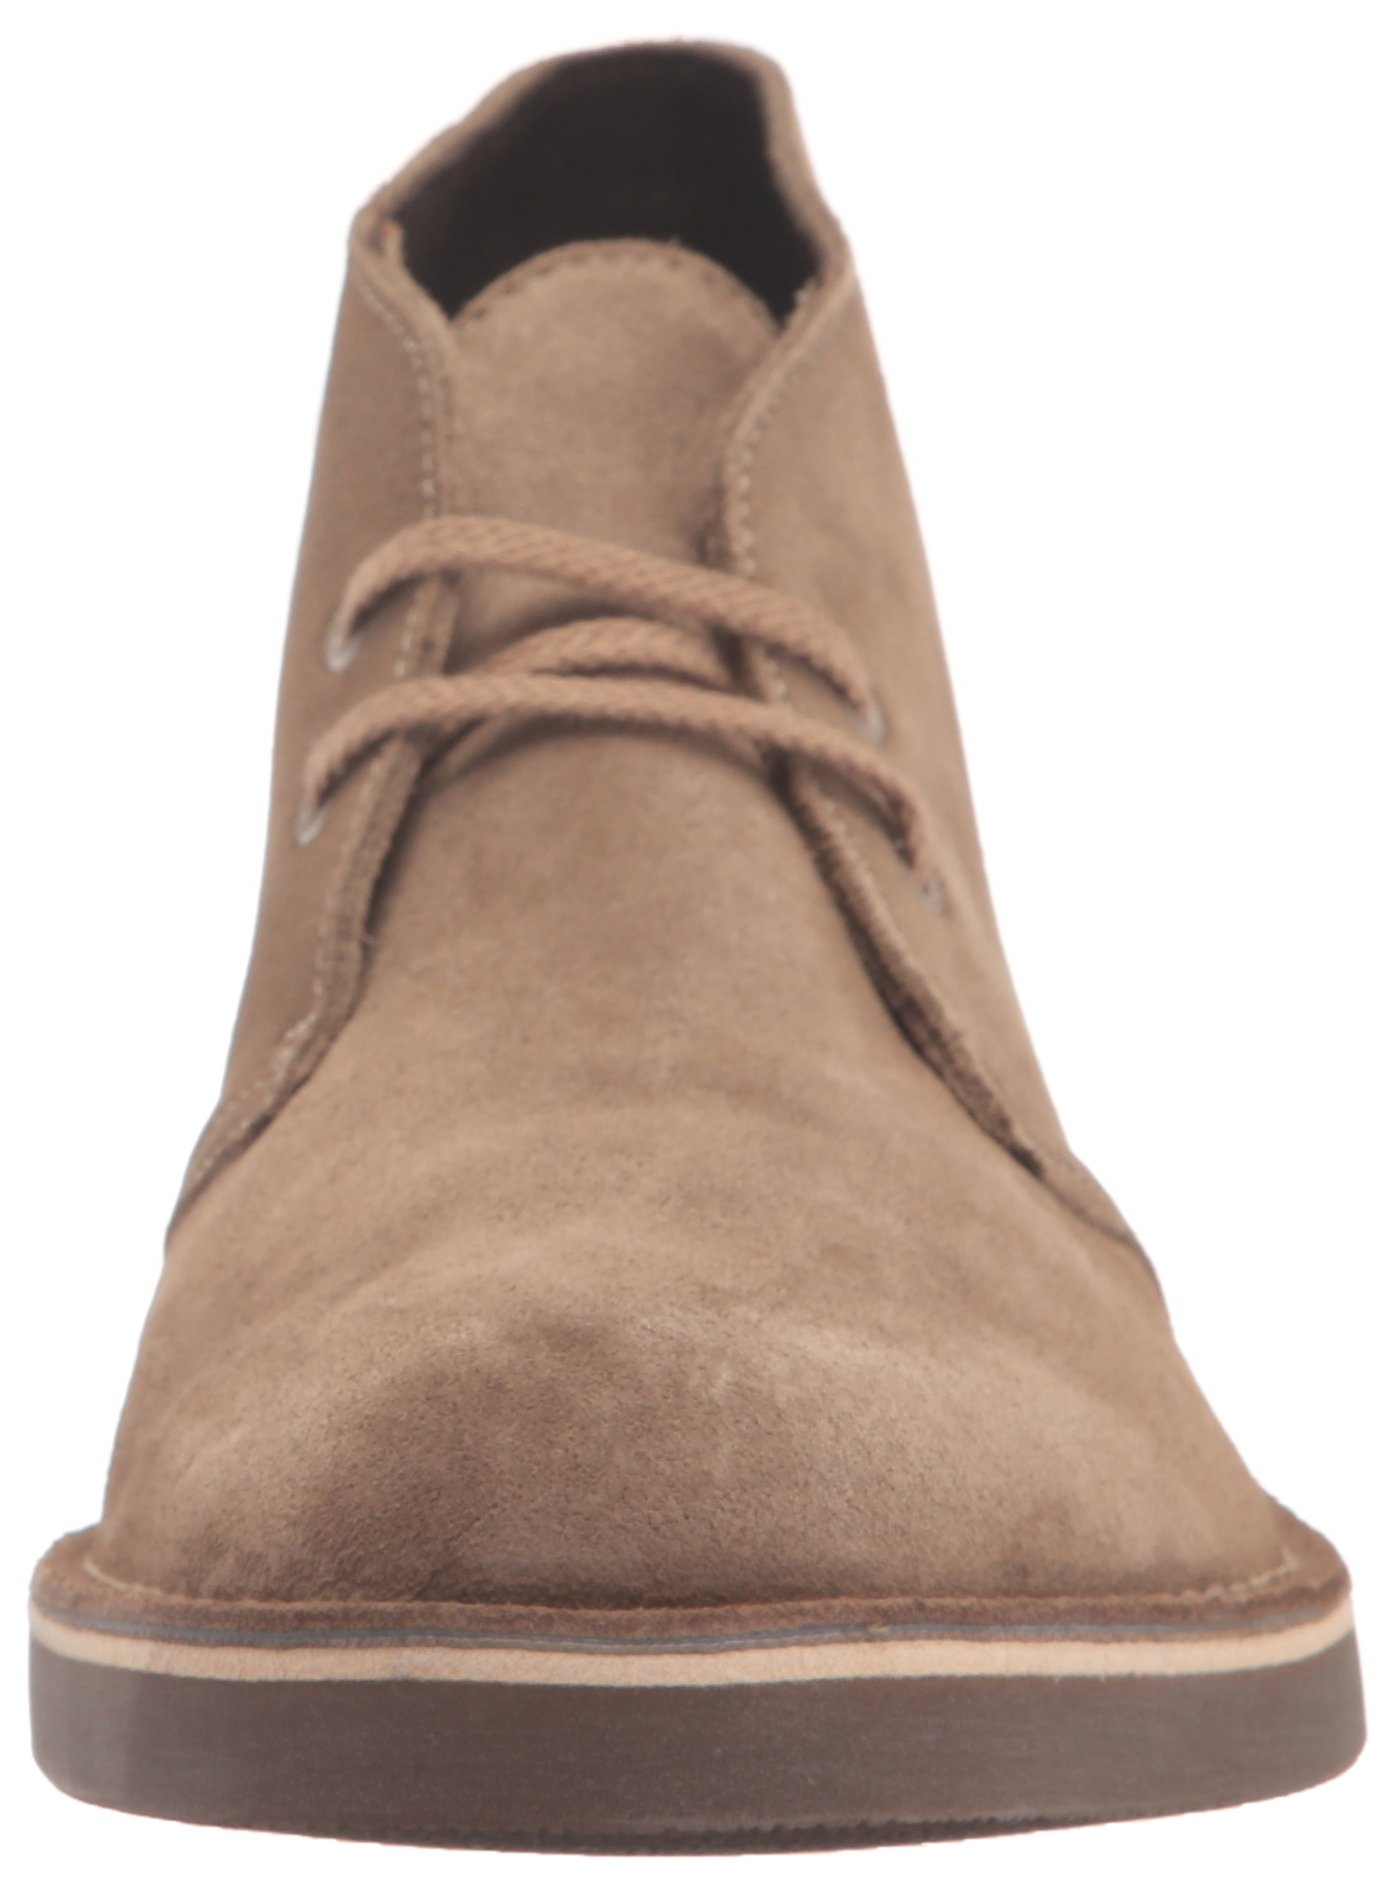 Clarks Men's Bushacre 2 Chukka Boot,Sand Sable,10 M US by CLARKS (Image #4)